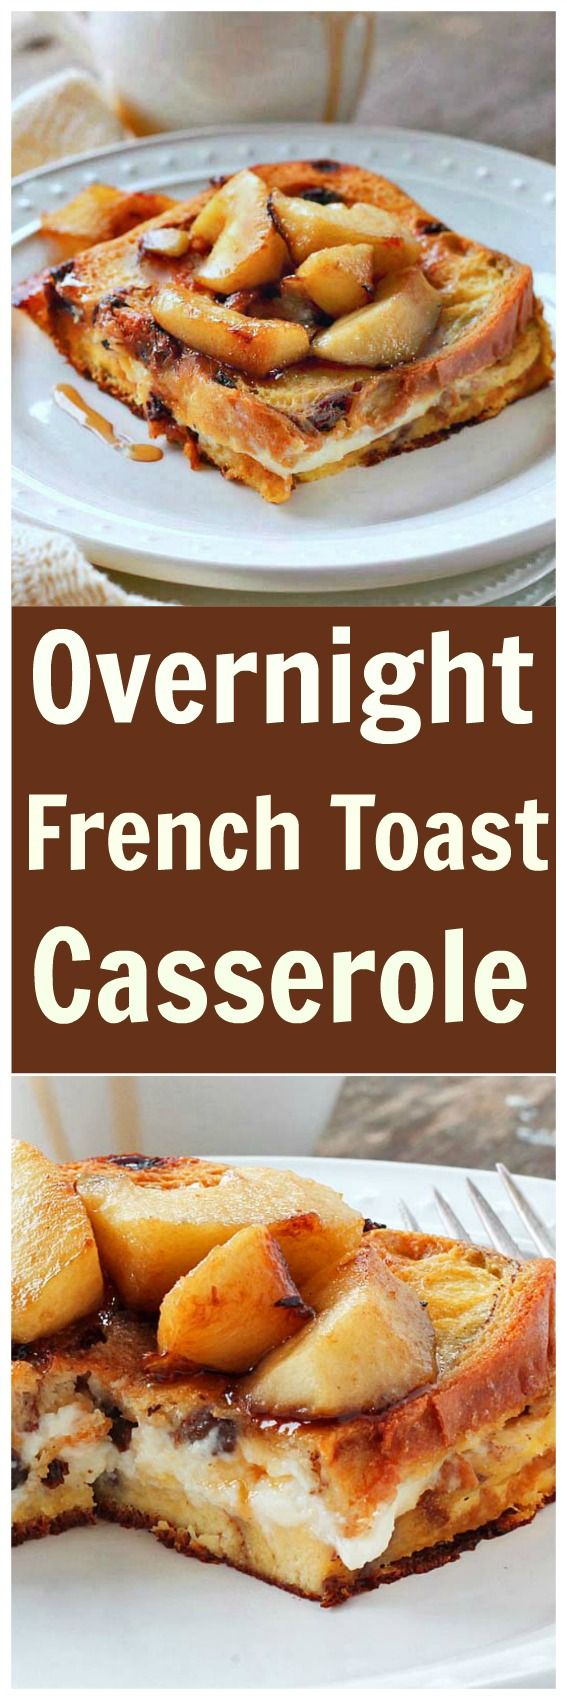 Overnight French Toast Casserole - The first bite of this casserole is amazing. Cinnamon, apples, raisins with a  LAYER OF CREAM CHEESE in the middle!